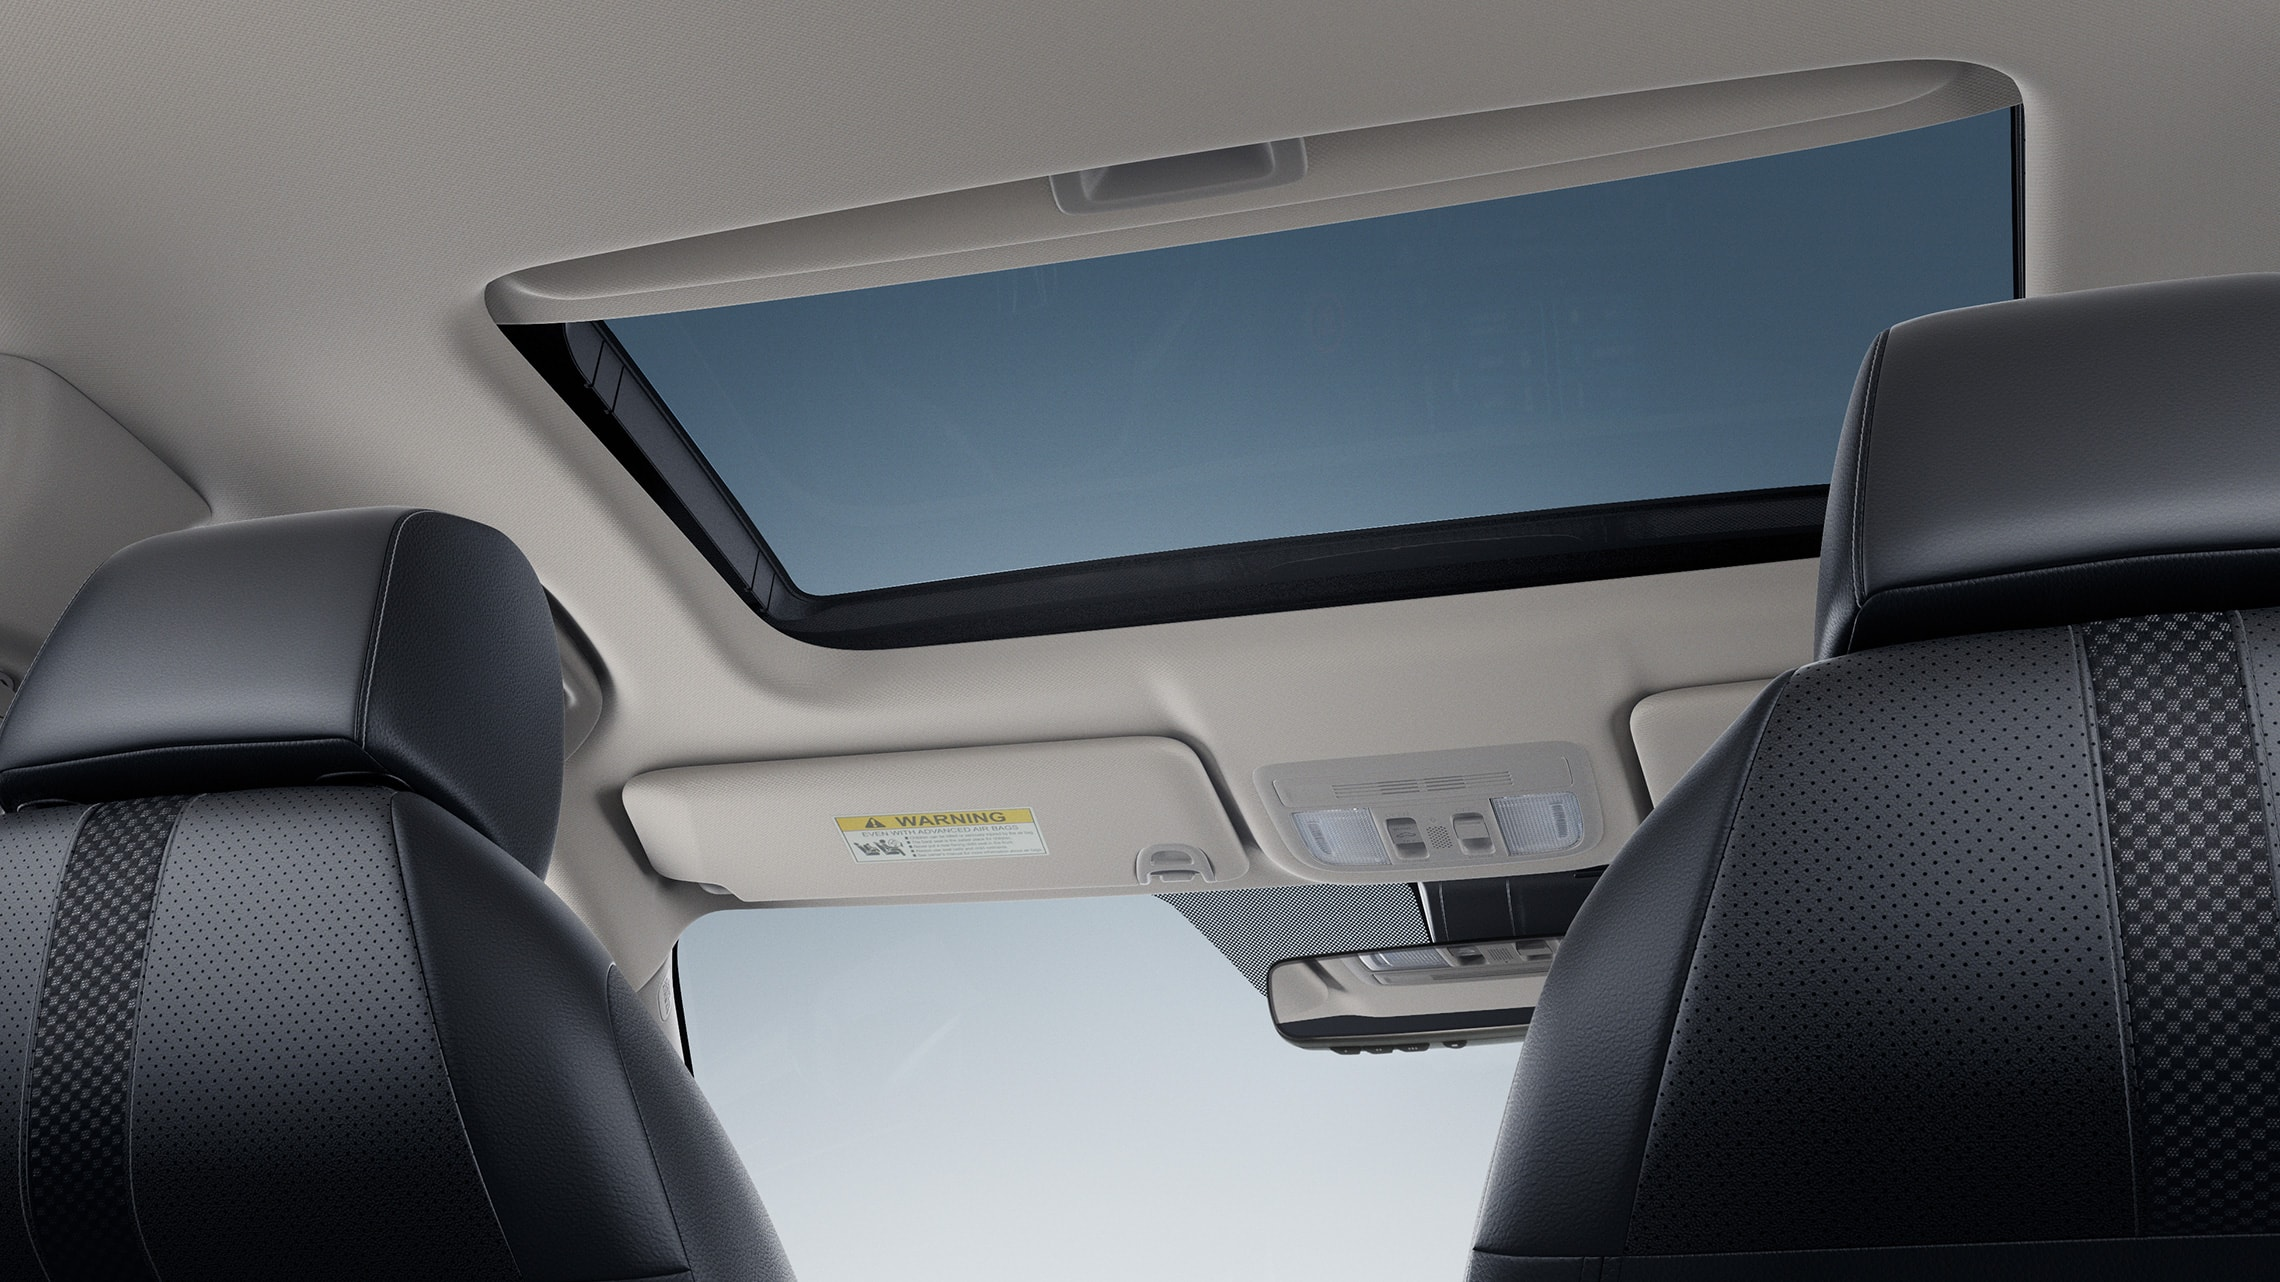 One-touch power moonroof detail in the 2021 Honda Civic Touring Sedan.